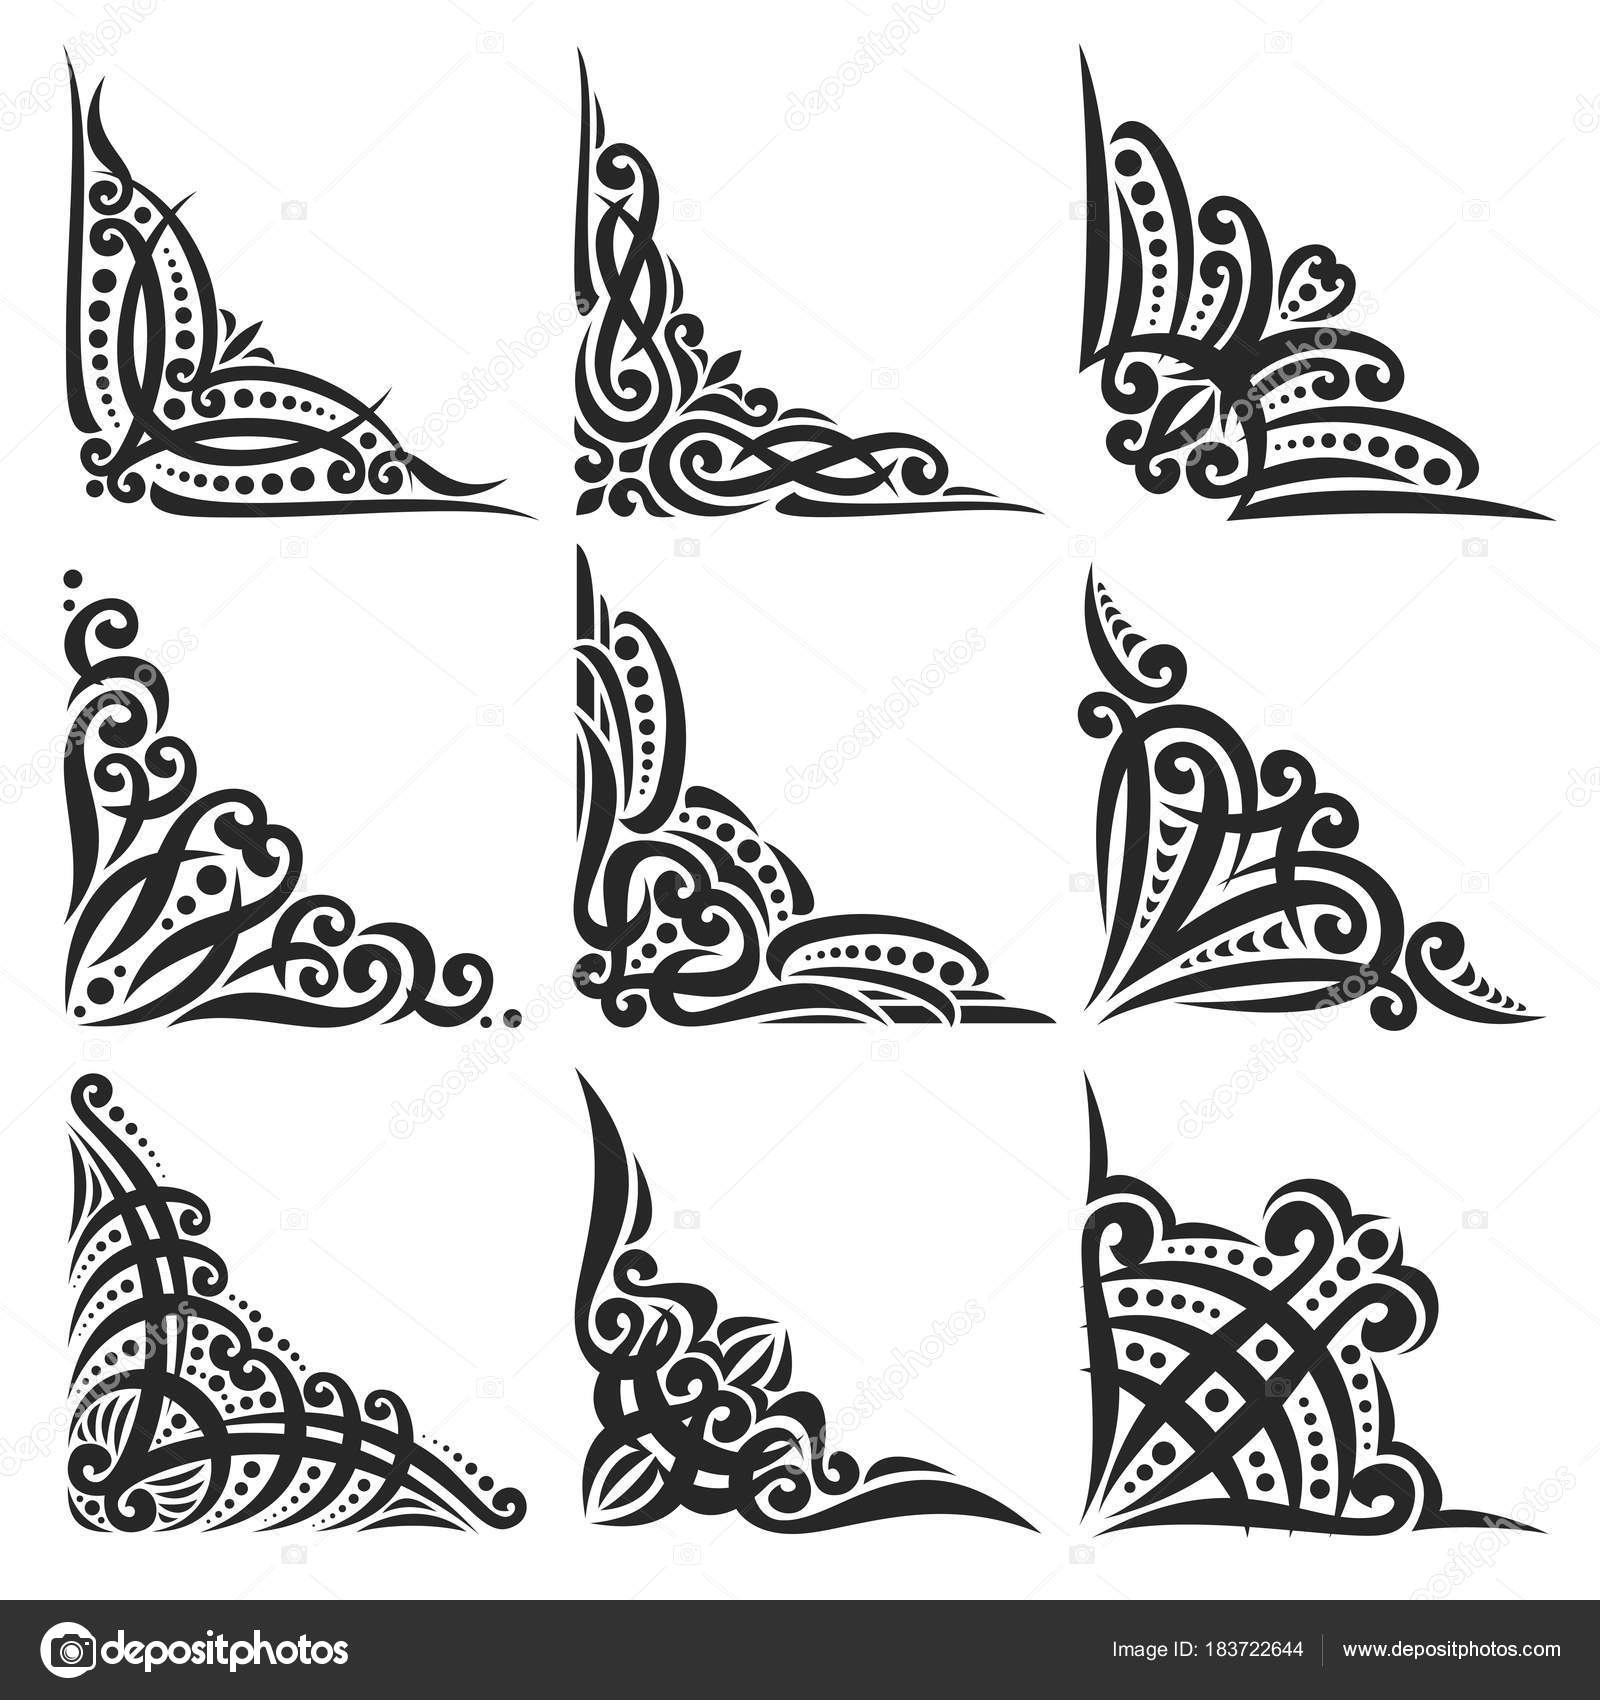 Vector Set Decorative Black Corners White Creating Frames Ornate